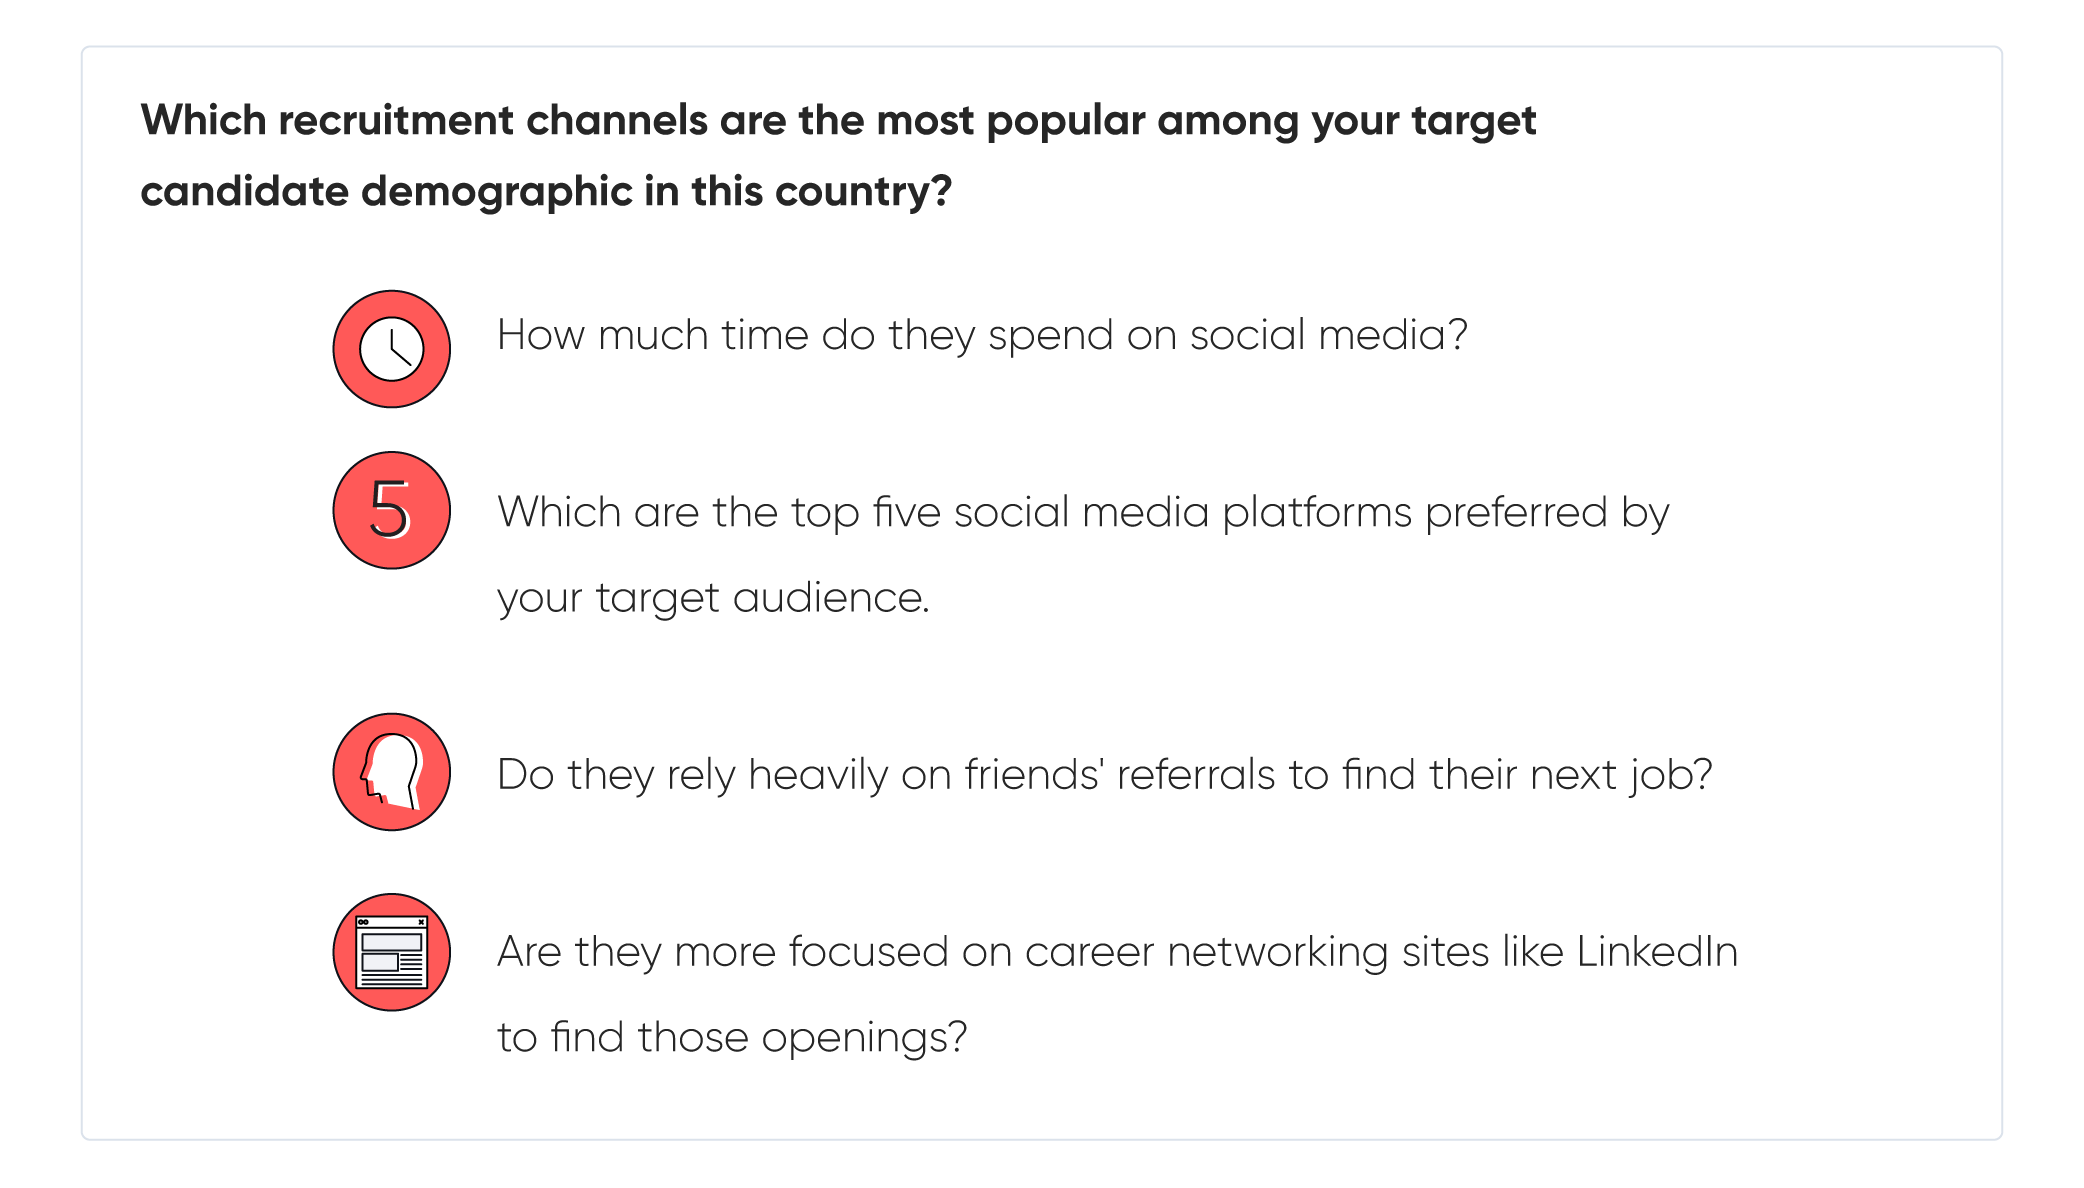 which recruitment channels are the most popular among your target candidate demographic in this country